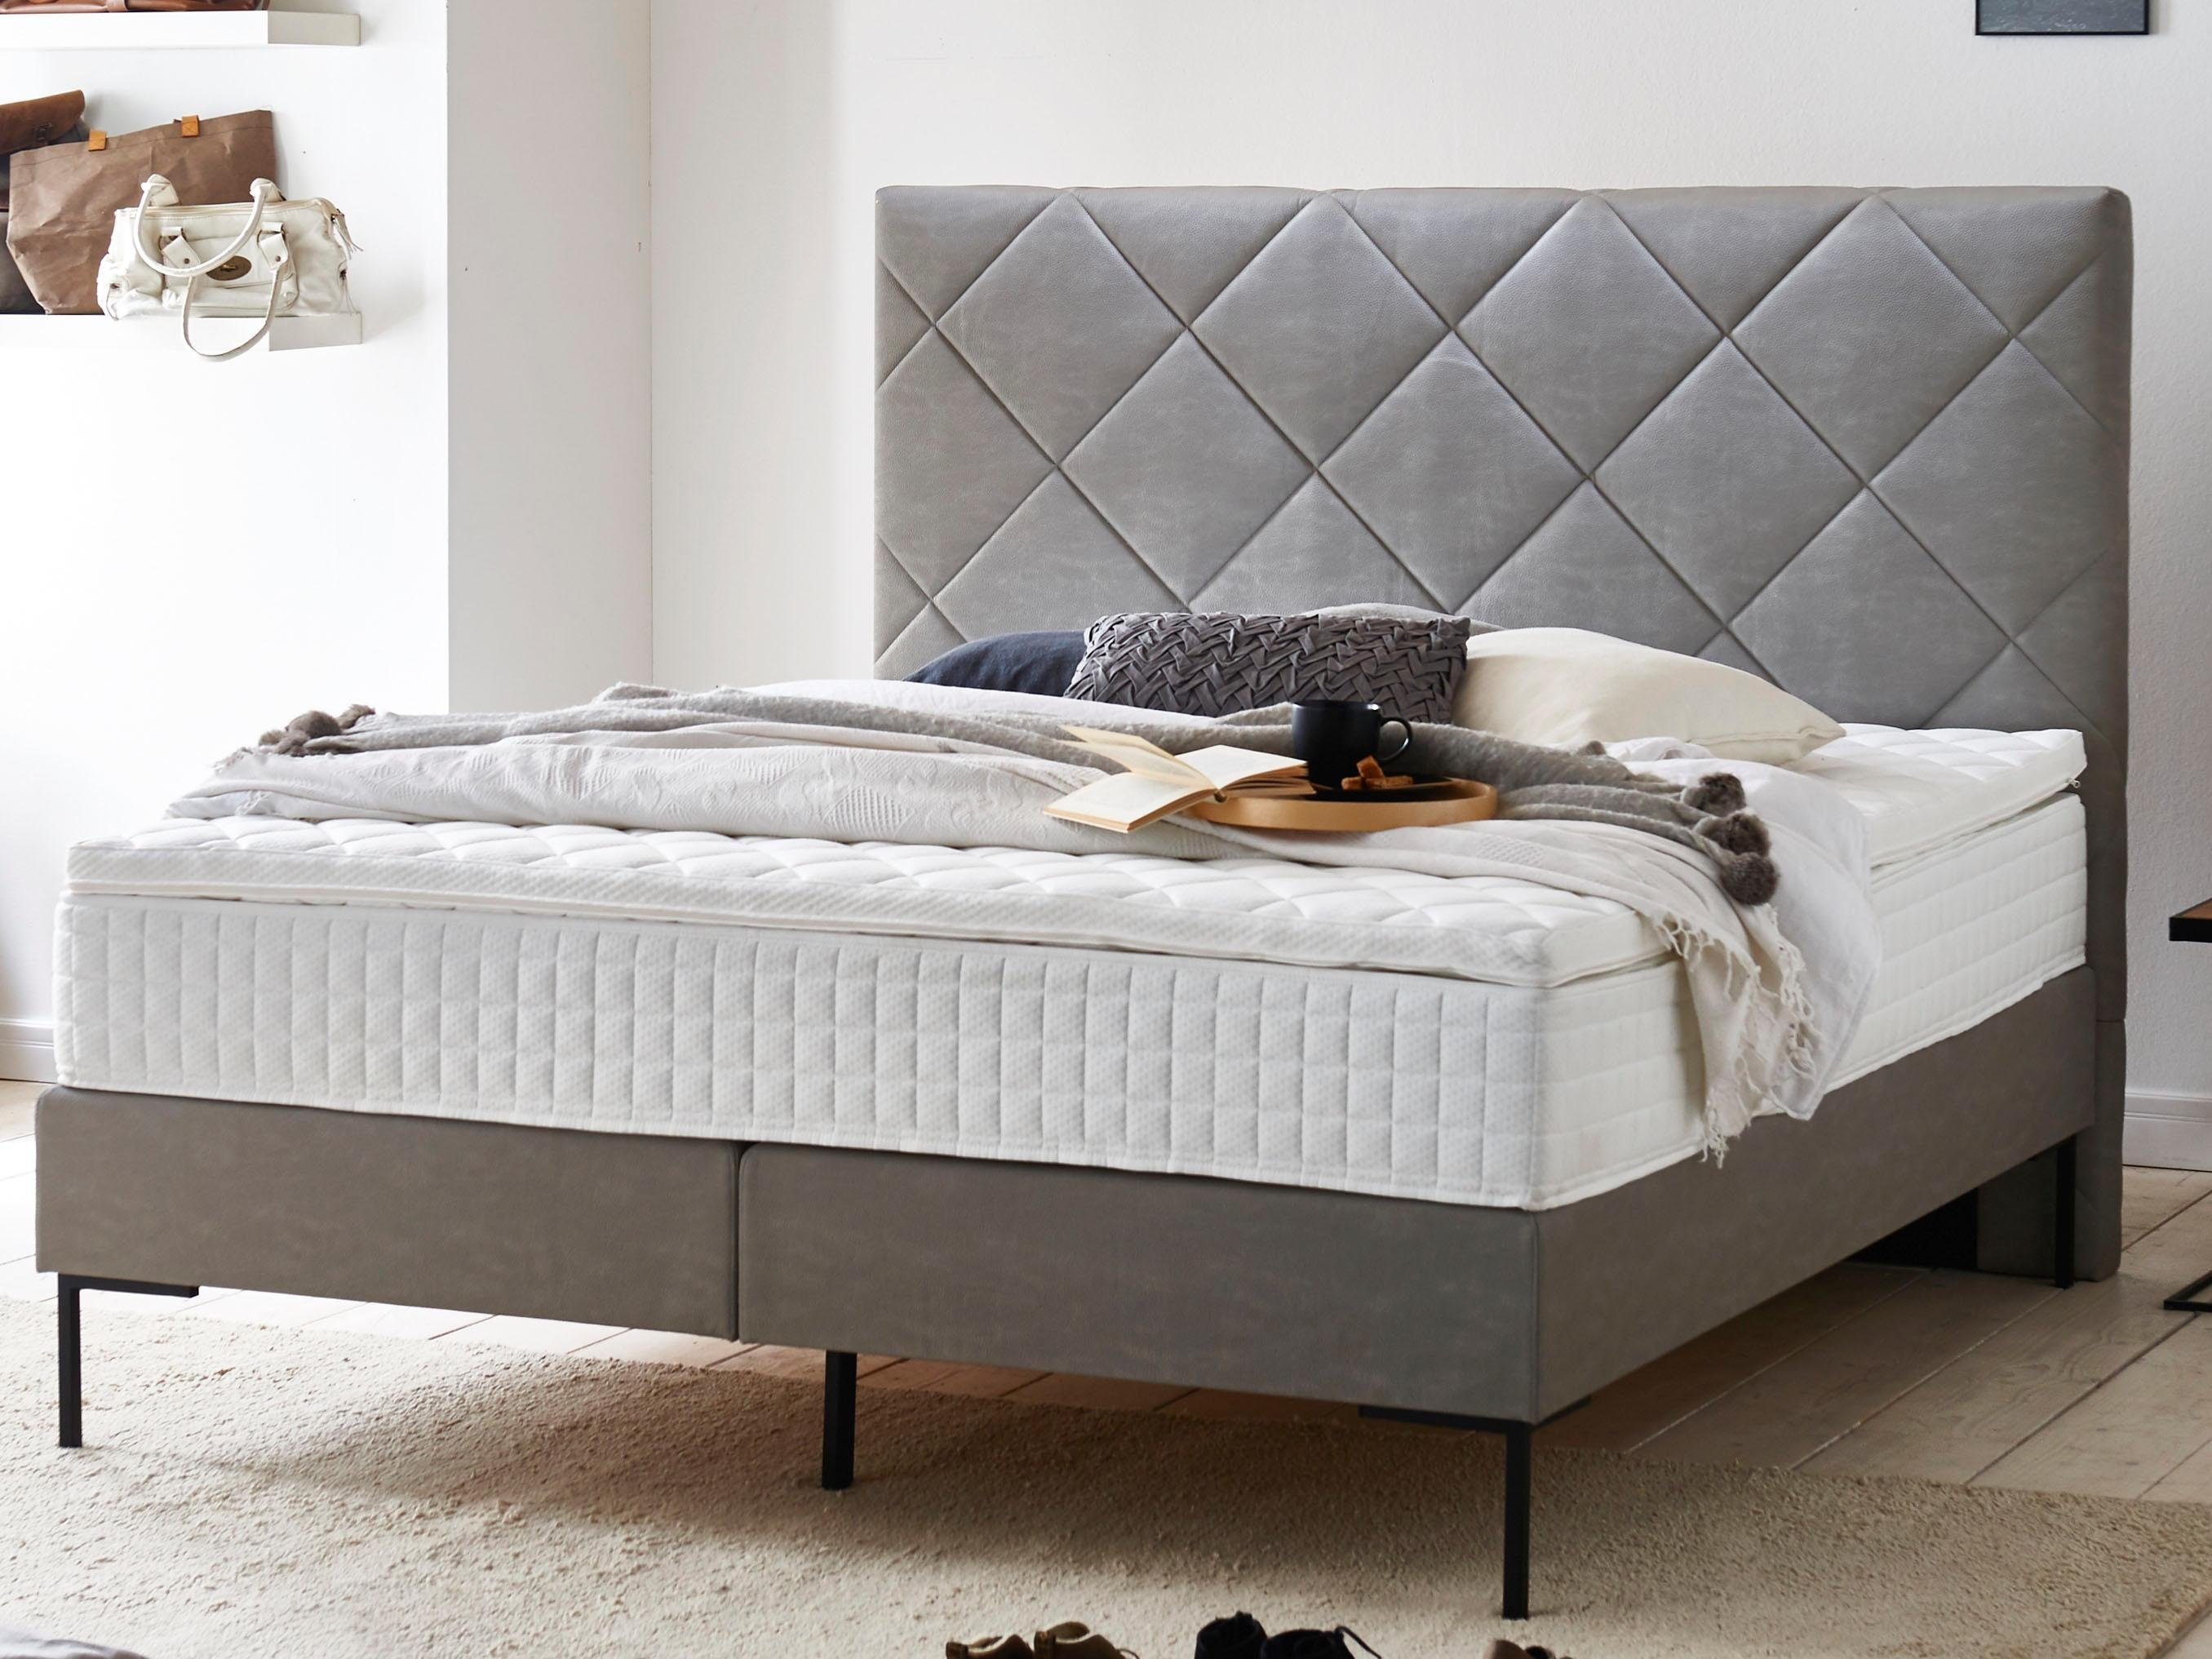 Boxspringbett Mit Topper Atlantic Home Collection Boxspringbett, Mit Topper | Otto